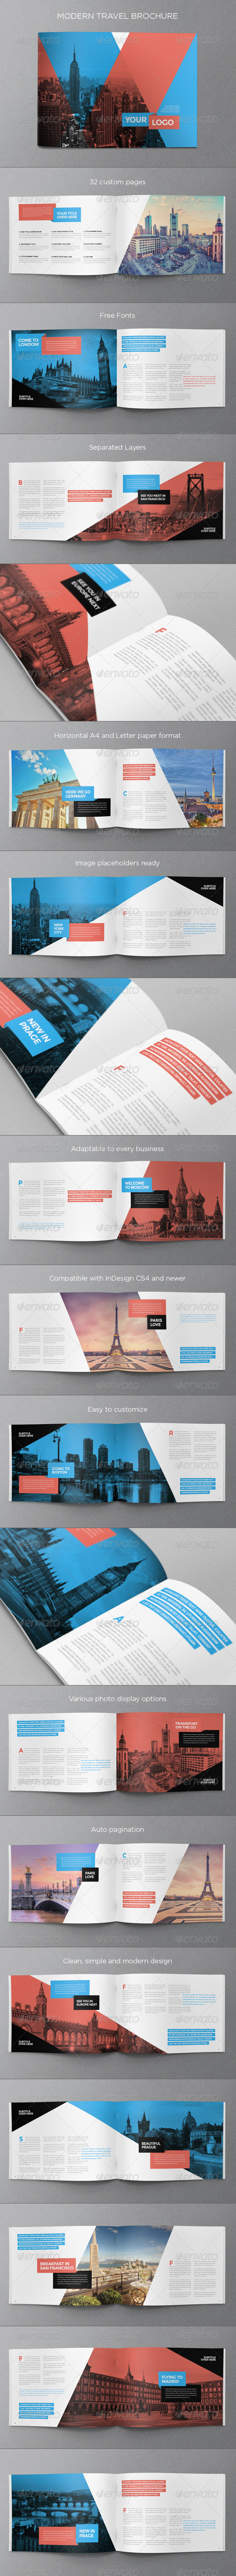 GraphicRiver Modern Travel Brochure 8753153